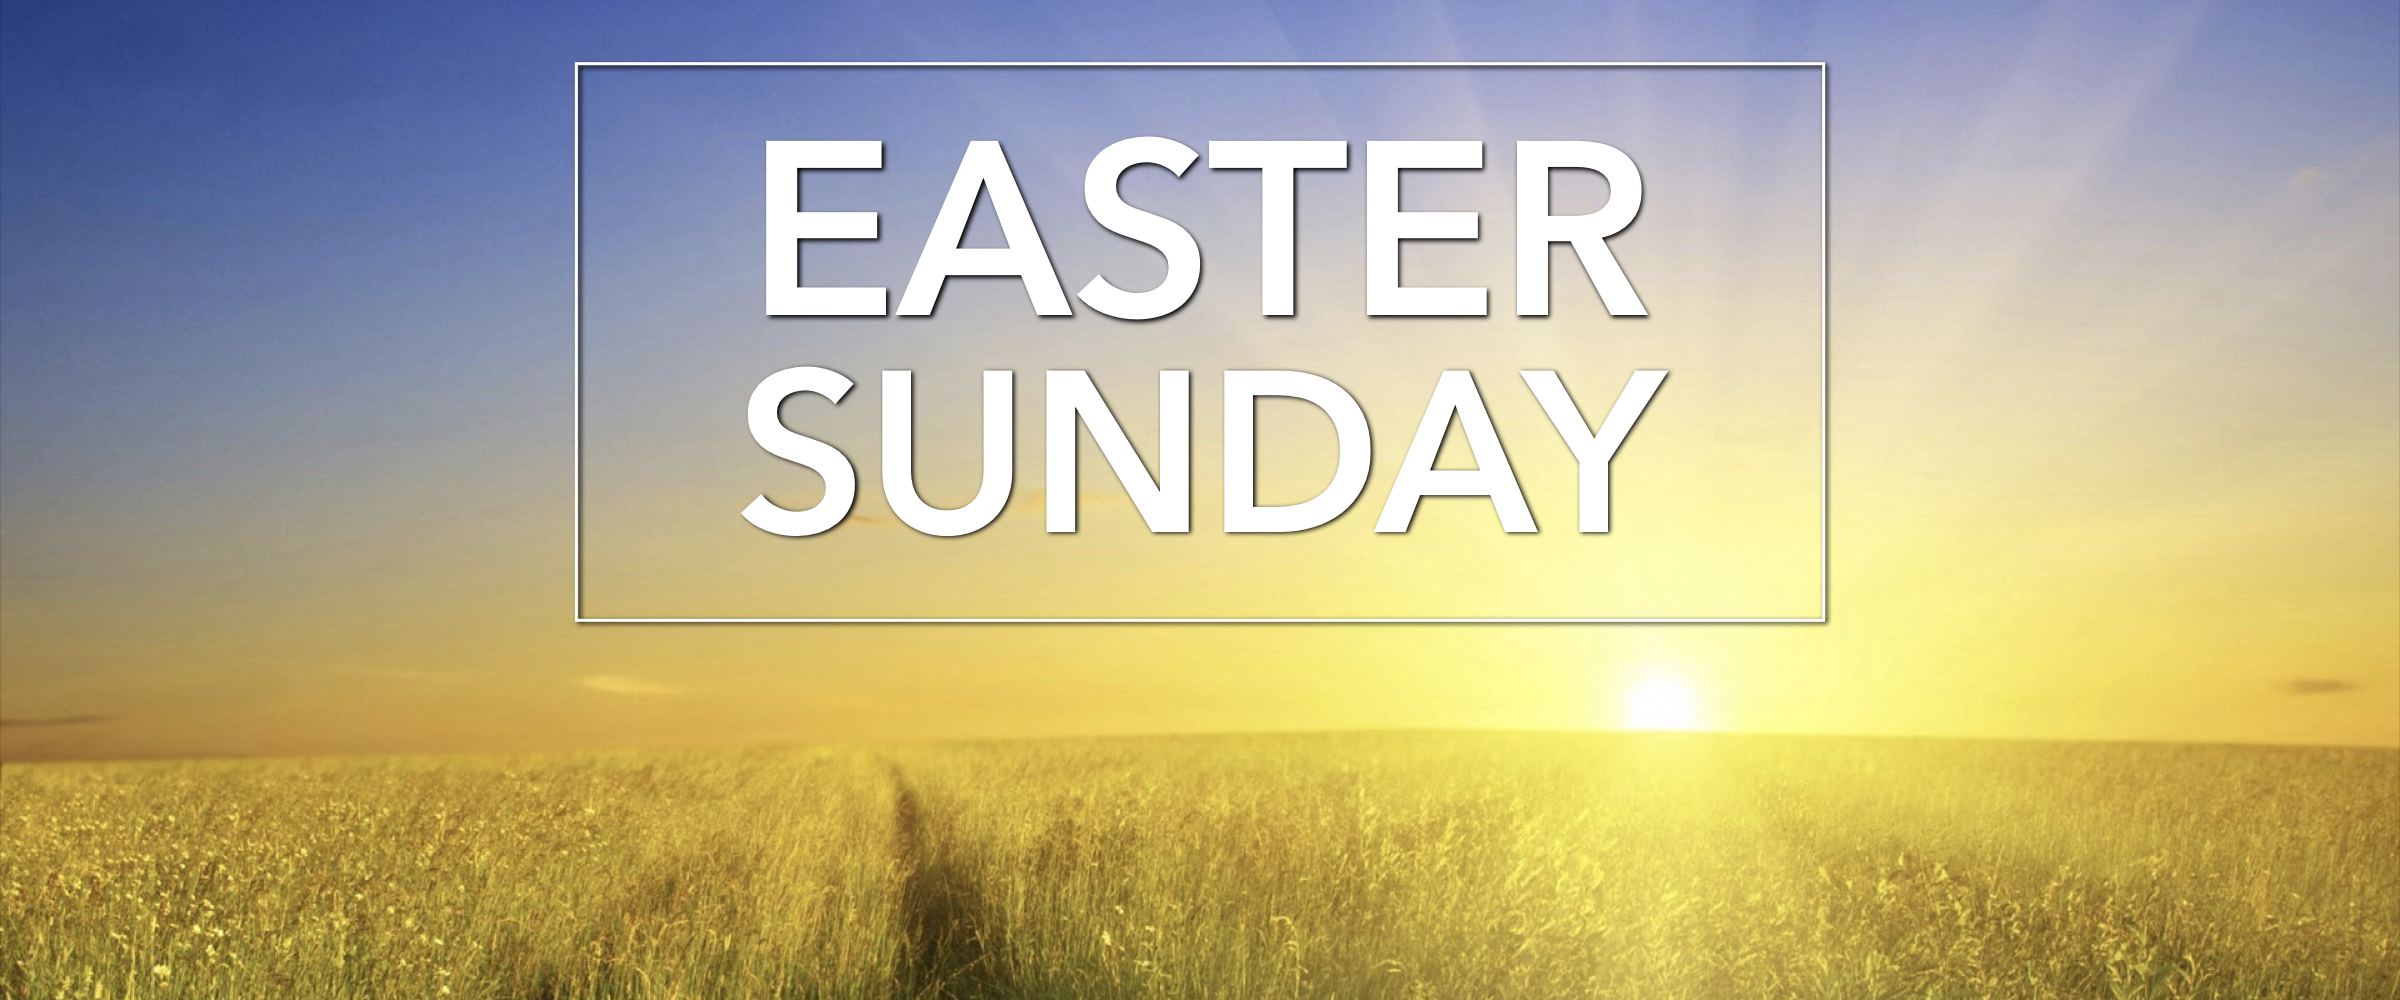 EASTER SUNDAY (Event Graphic).001.png